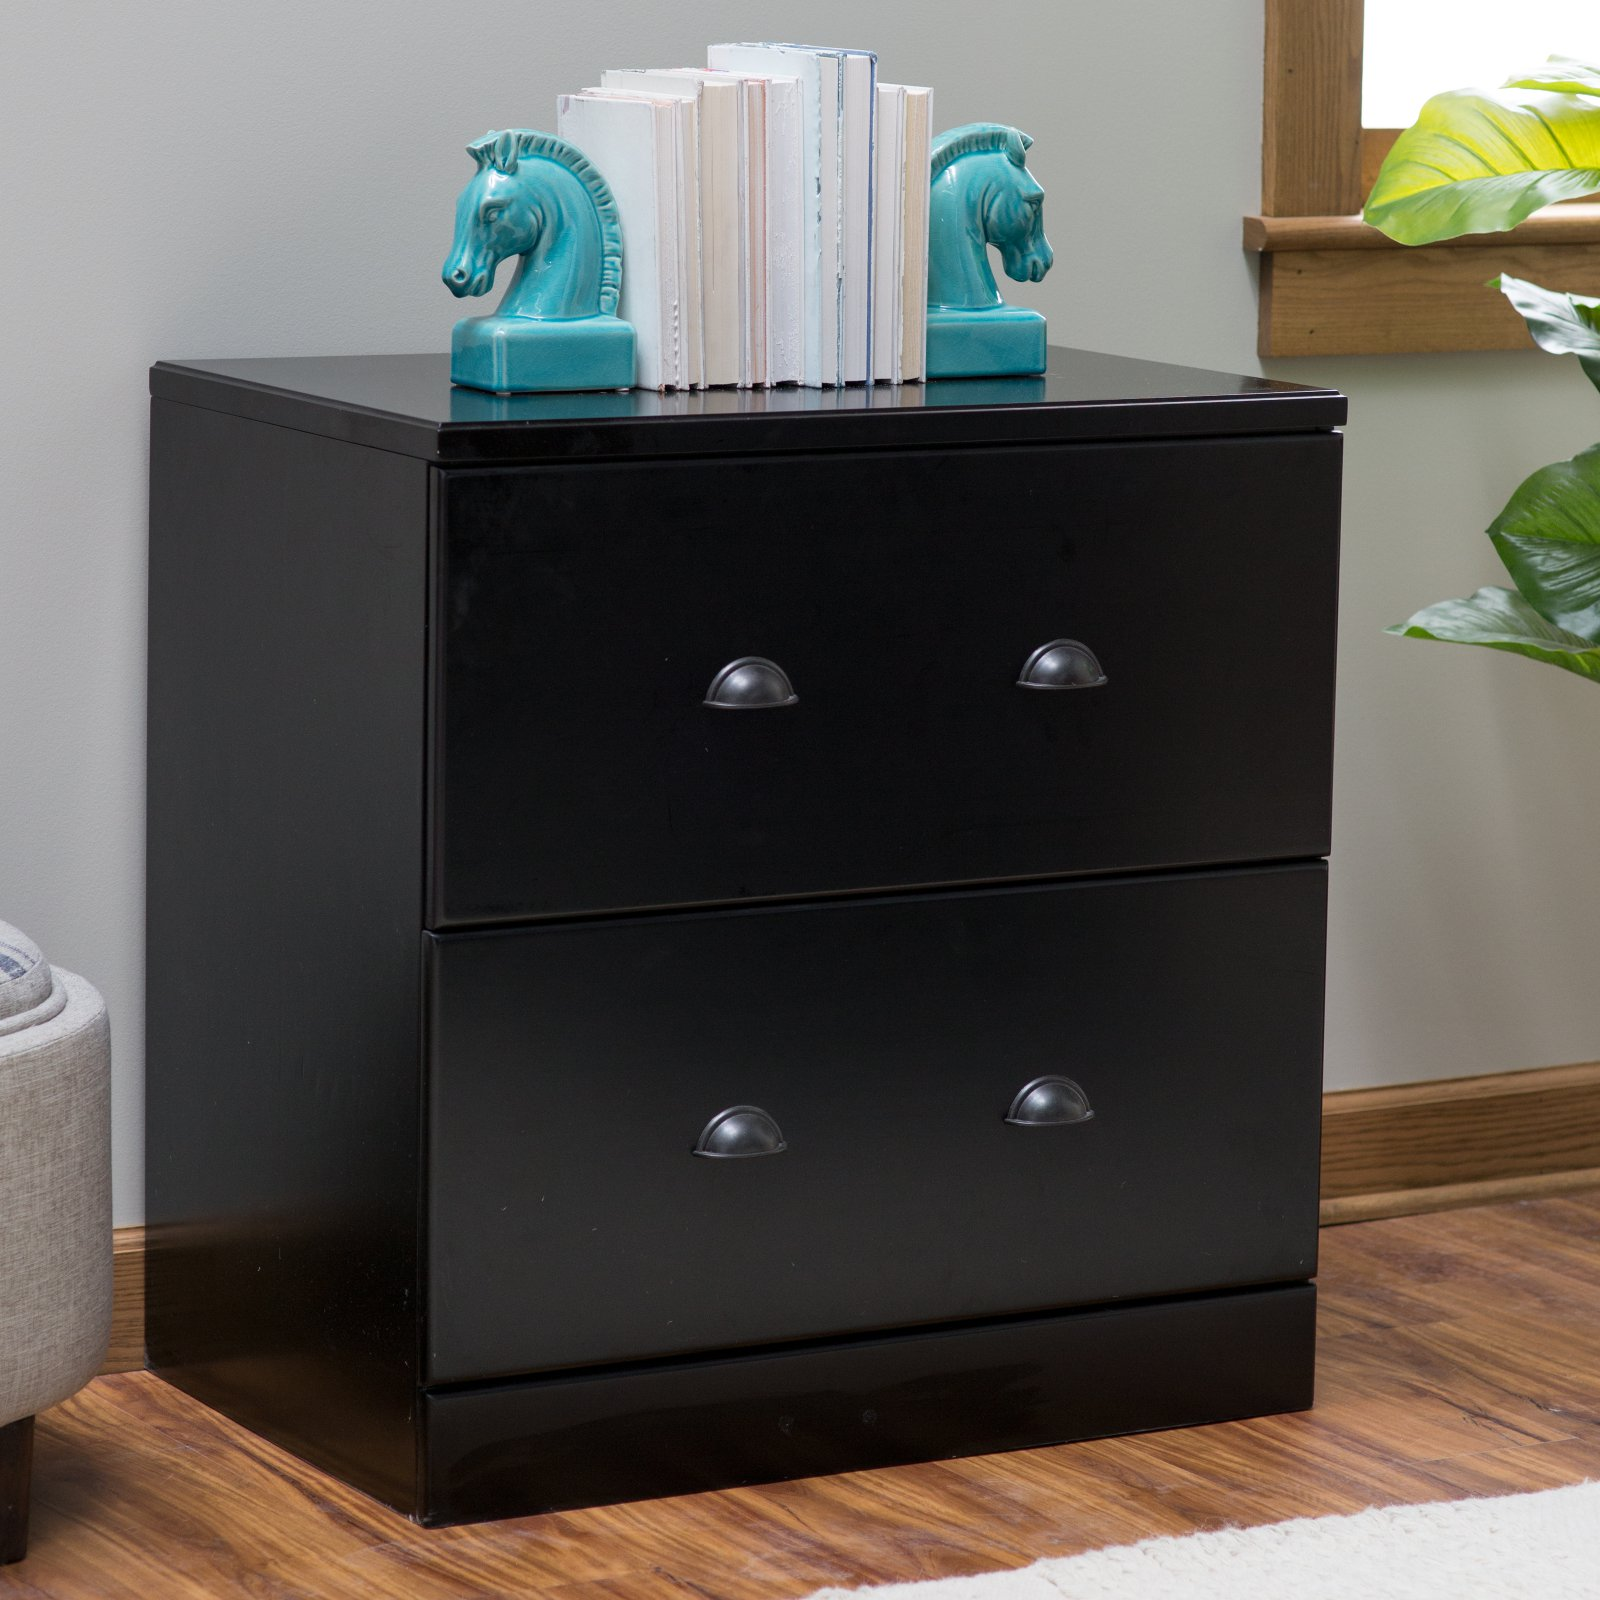 Belham Living Cambridge Lateral Wood File Cabinet - Black